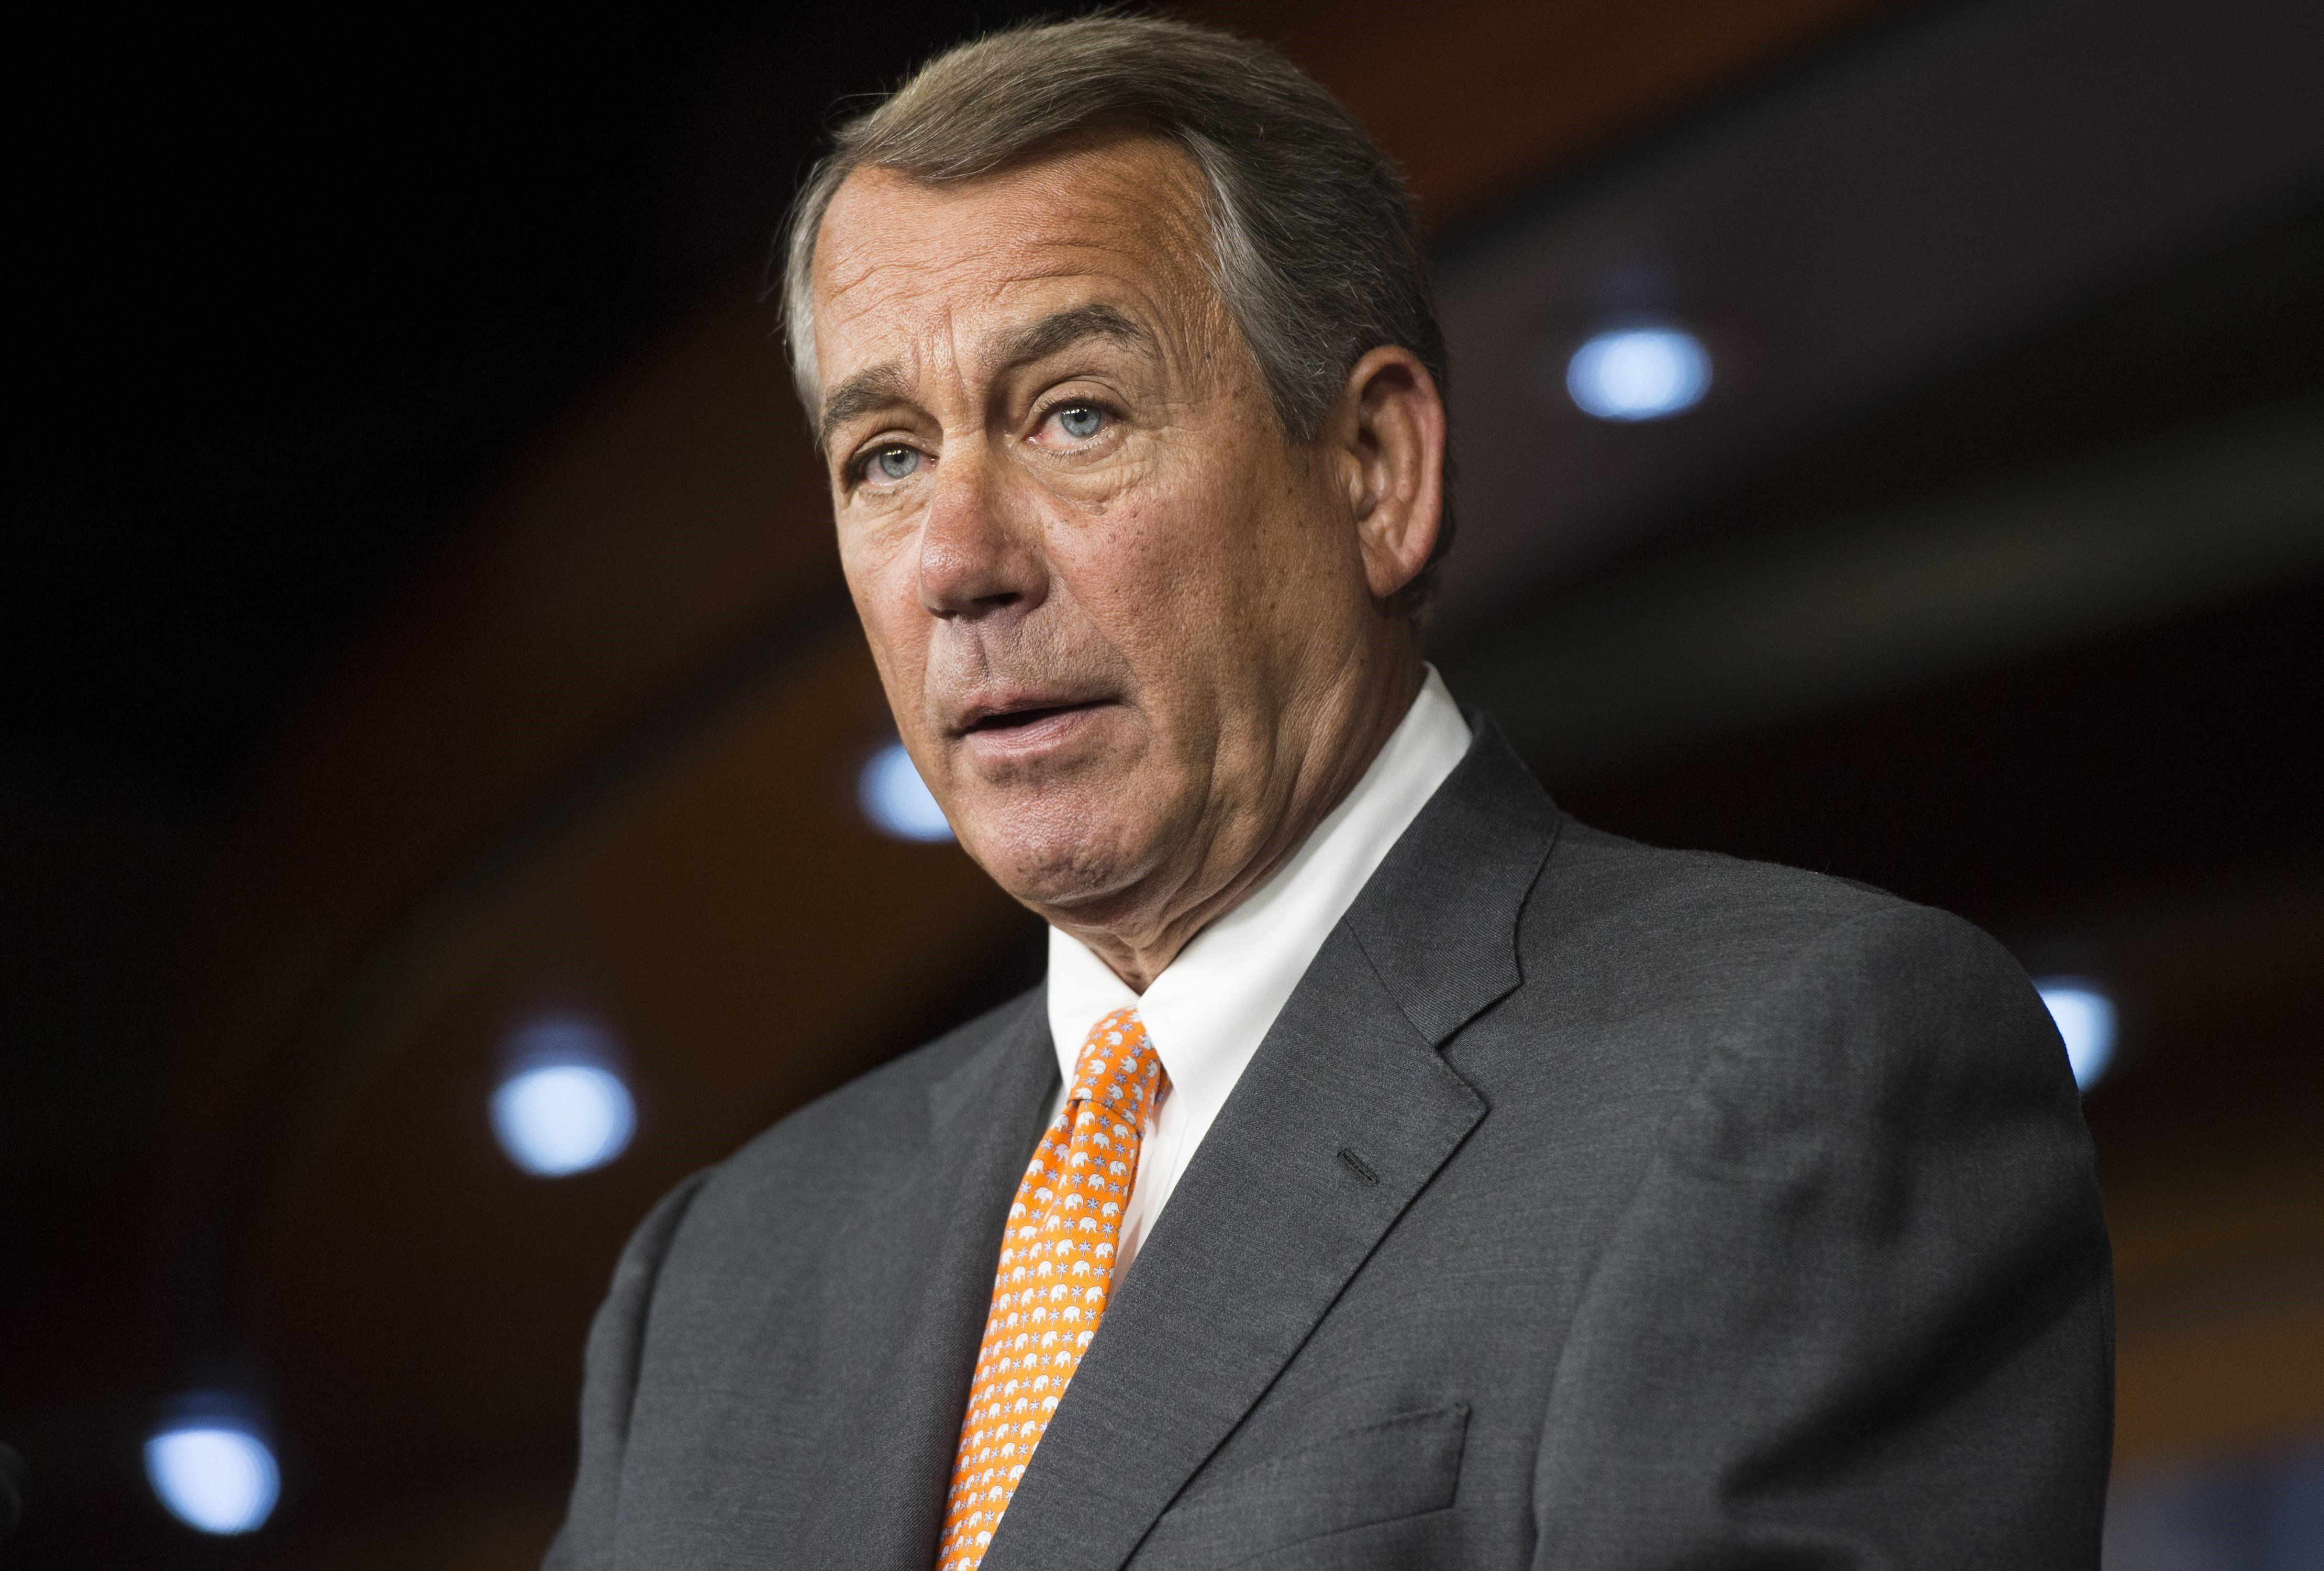 US Speaker of the House John Boehner speaks during a press conference on Capitol Hill in Washington, DC, September 10, 2015. AFP PHOTO / SAUL LOEB        (Photo credit should read SAUL LOEB/AFP/Getty Images)